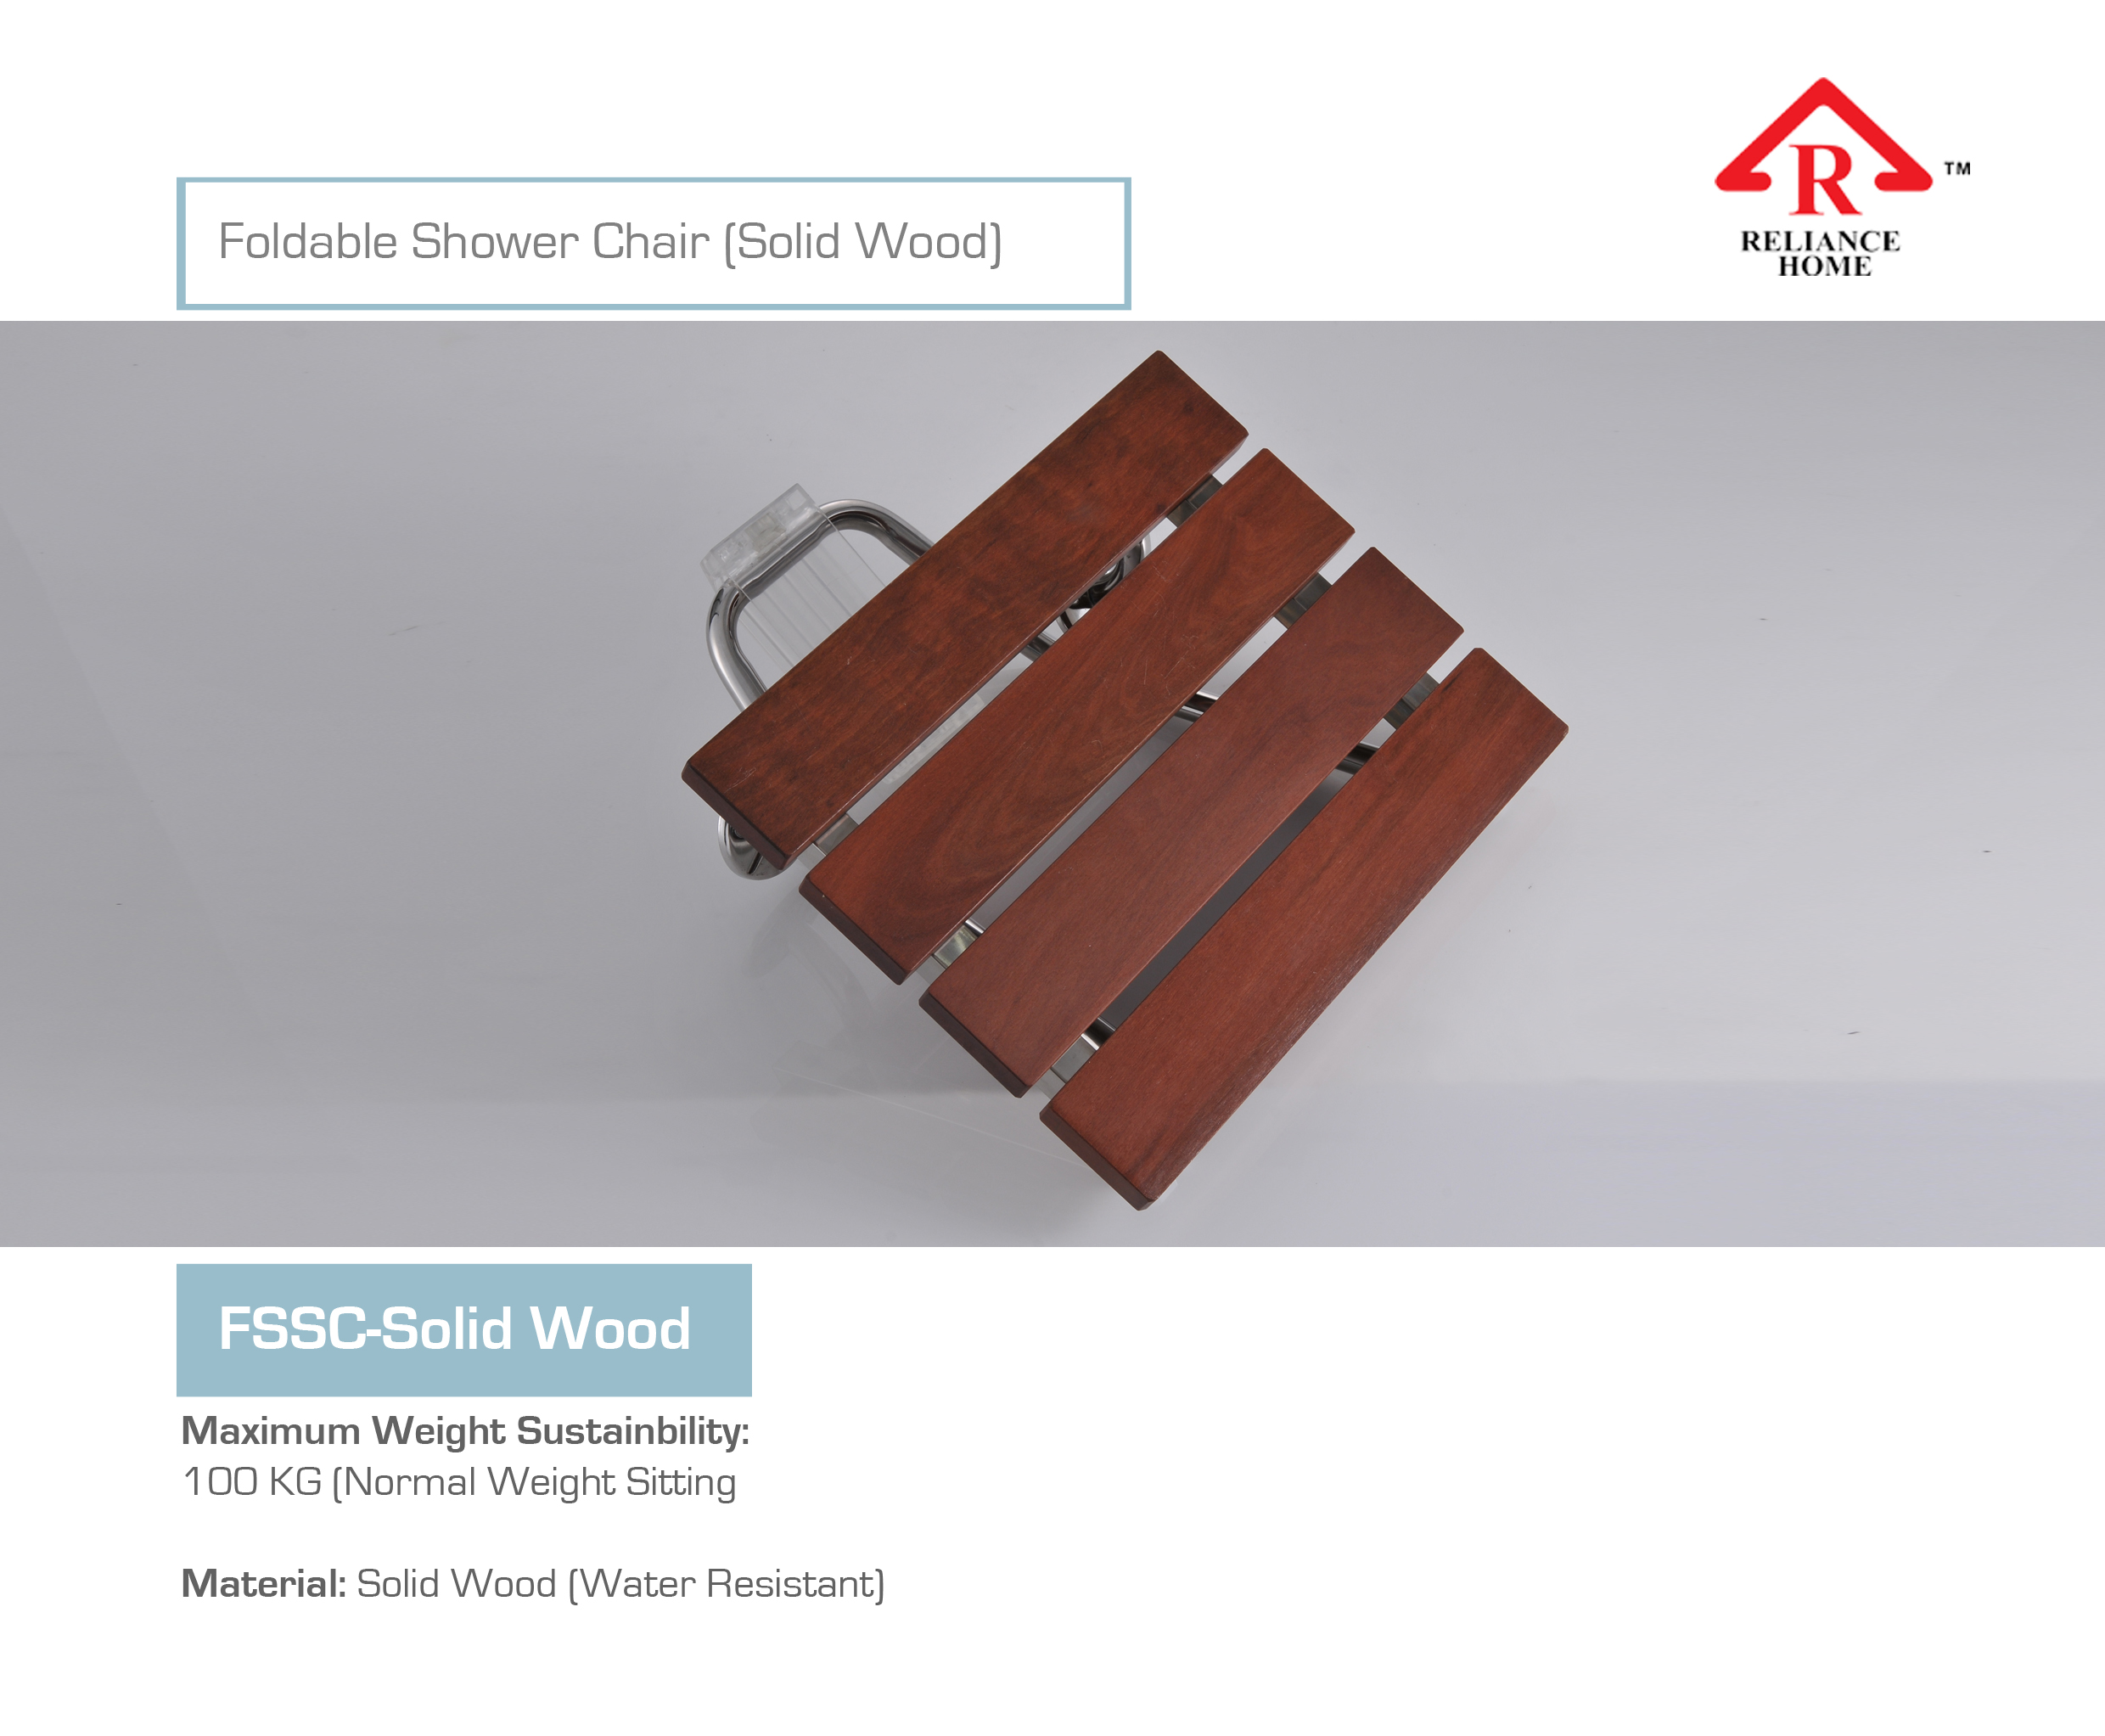 FSSCsolidwood